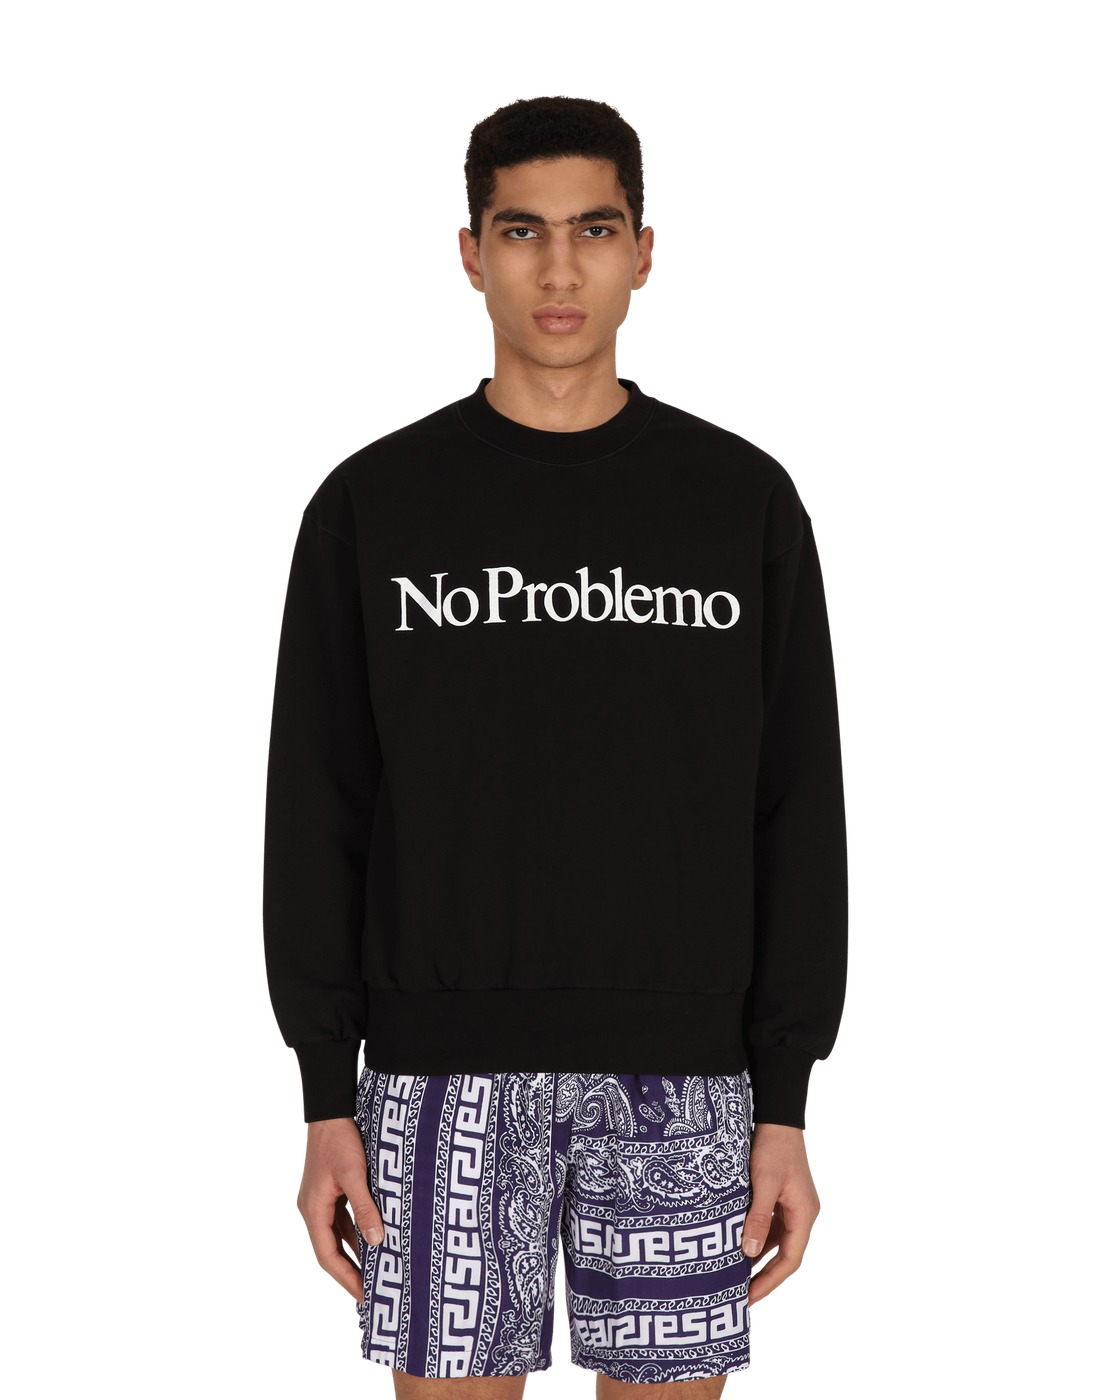 Photo: Aries No Problemo Crewneck Sweatshirt Black